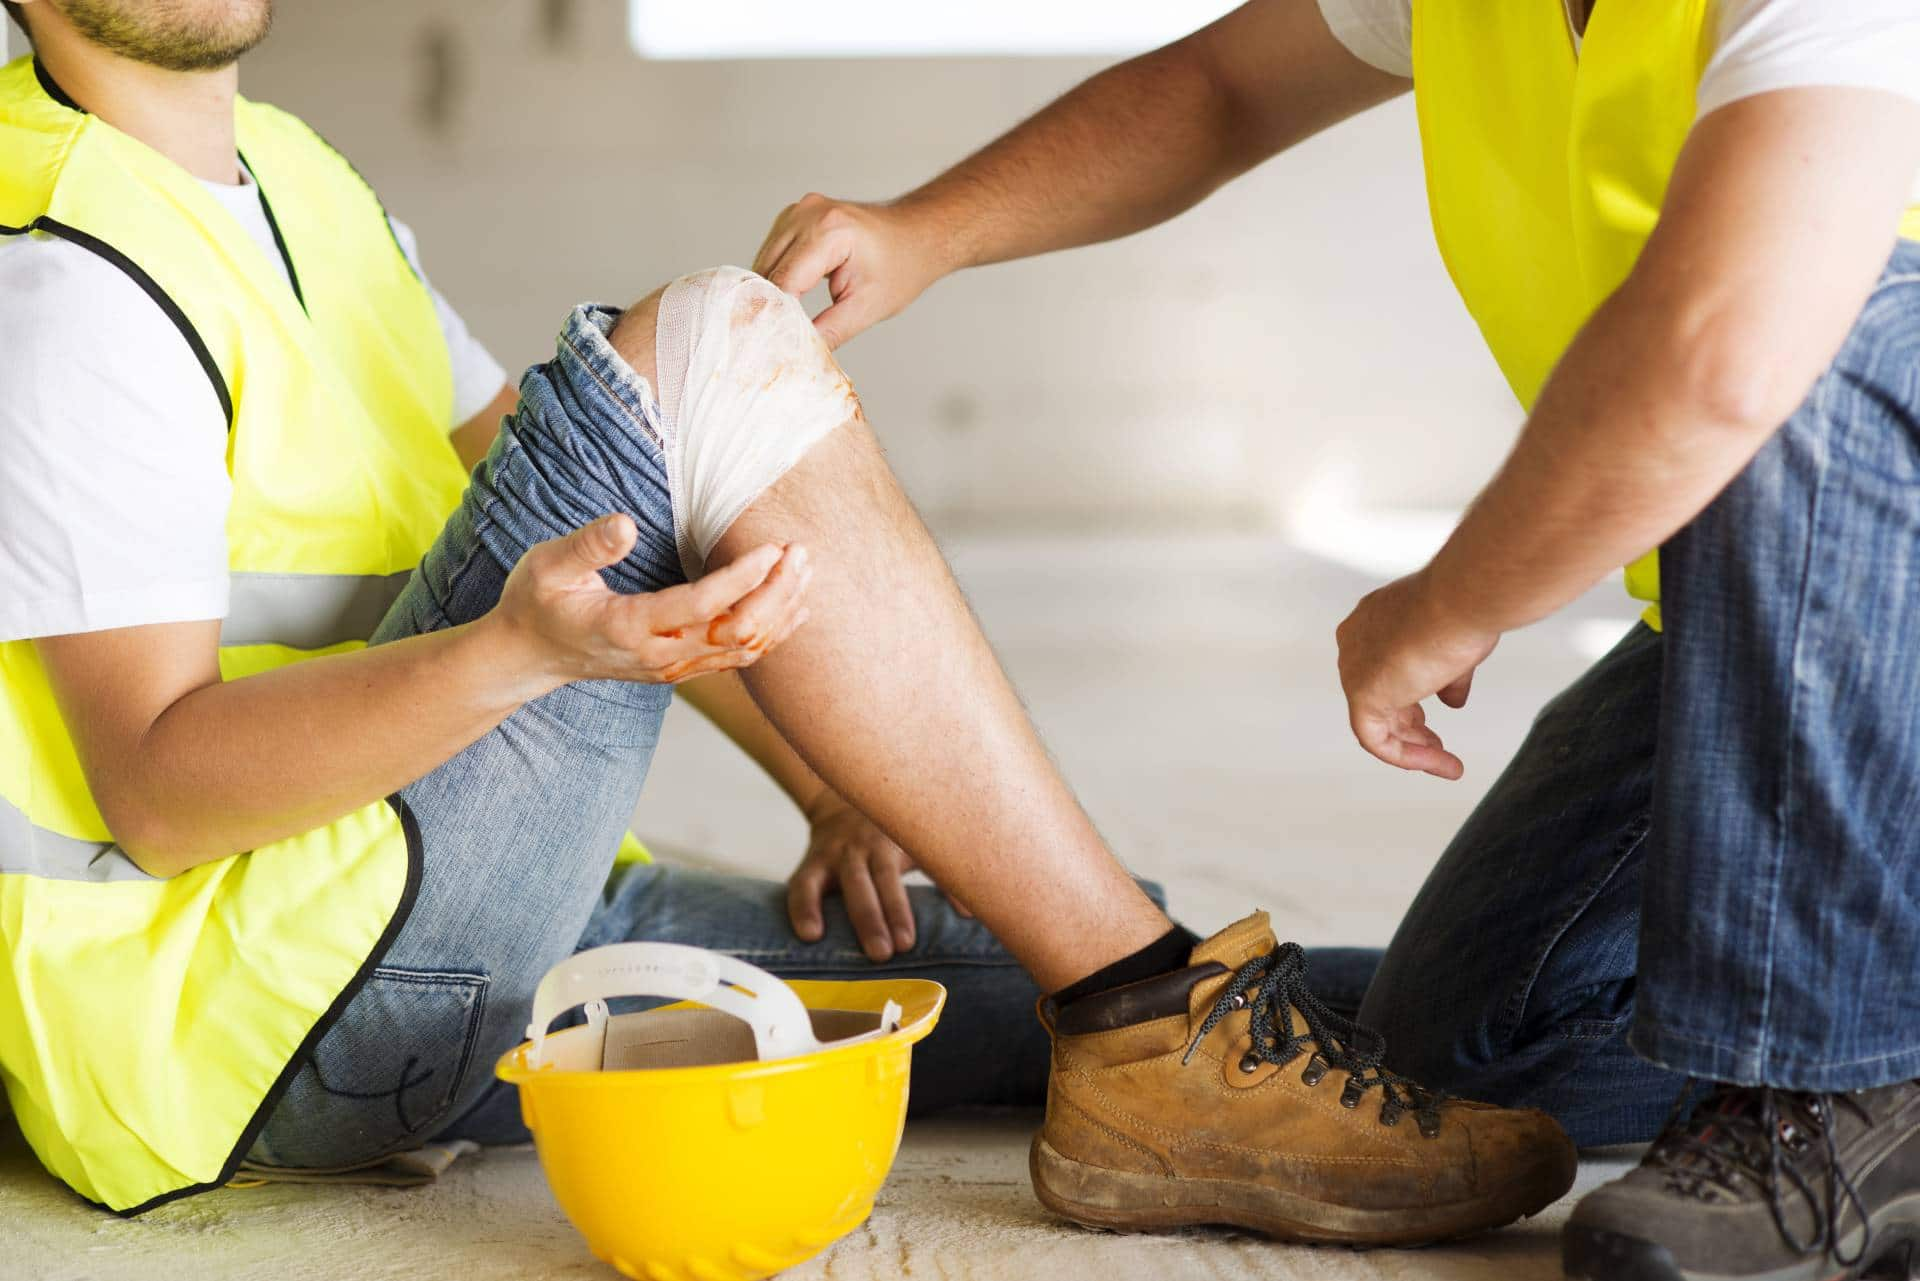 Injured on the job? Schedule a free consultation with our personal injury lawyers at the Angell Law Firm in Palmetto, Ga